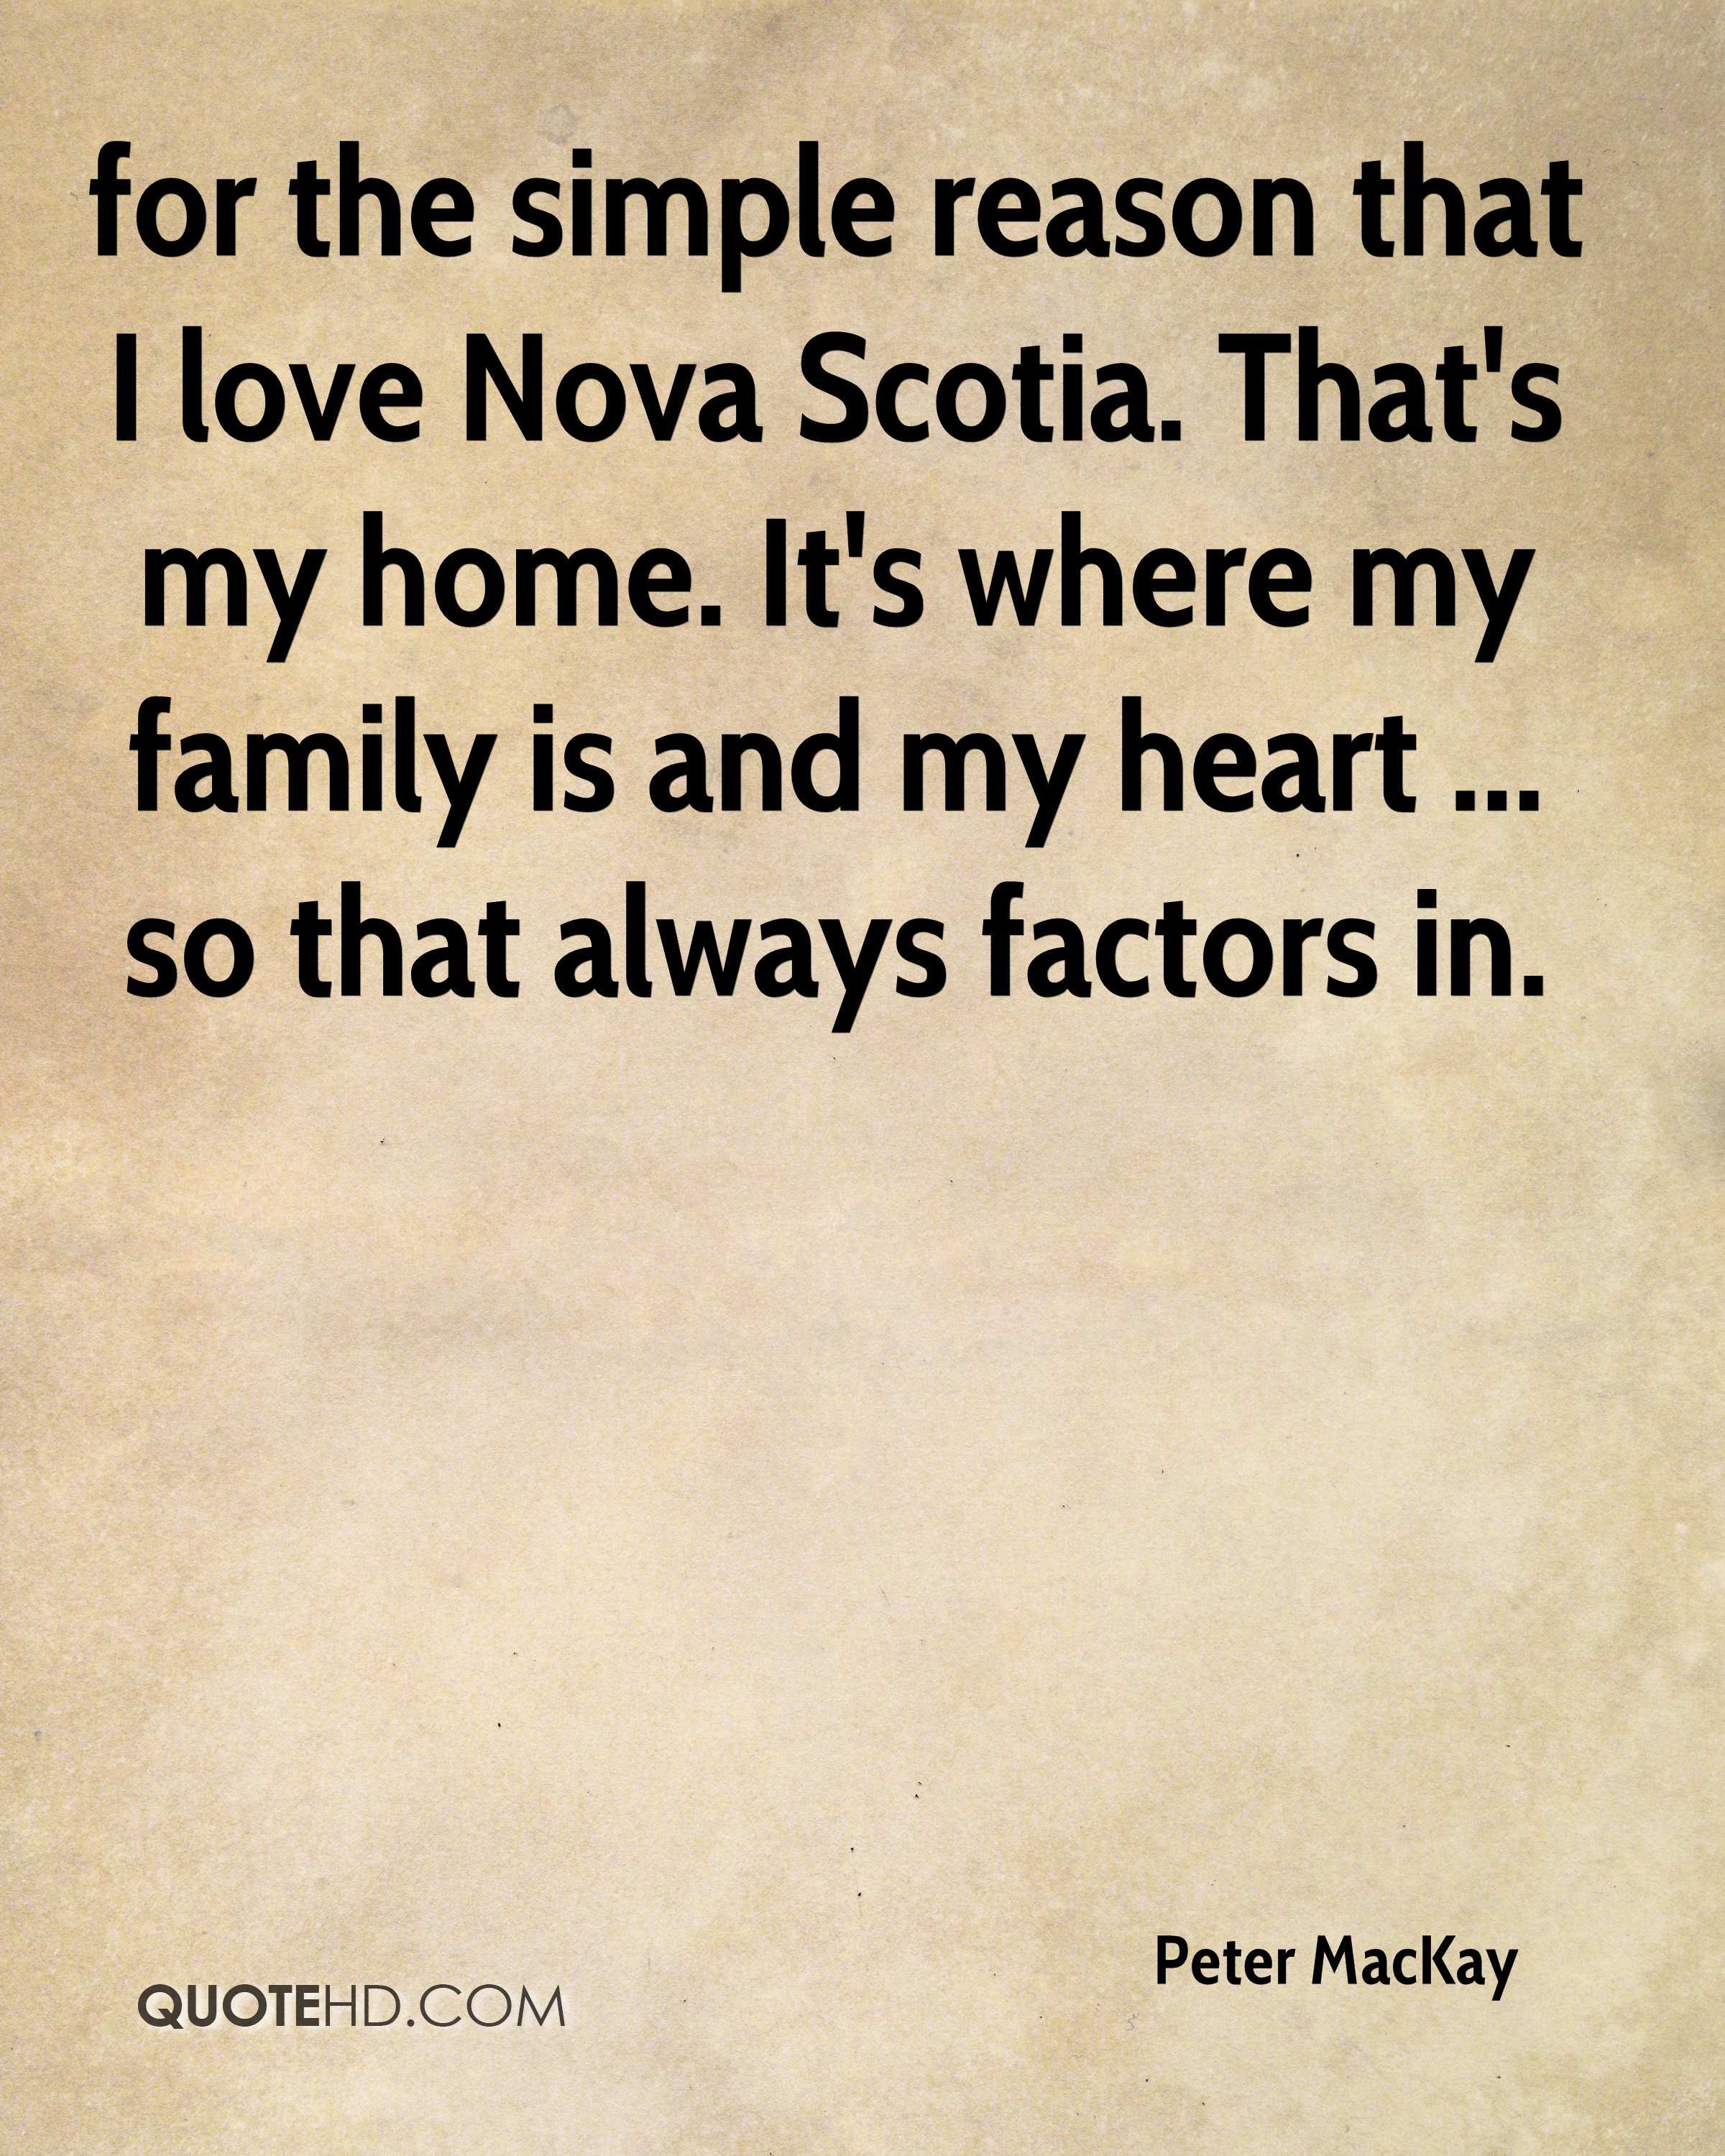 for the simple reason that I love Nova Scotia. That's my home. It's where my family is and my heart ... so that always factors in.